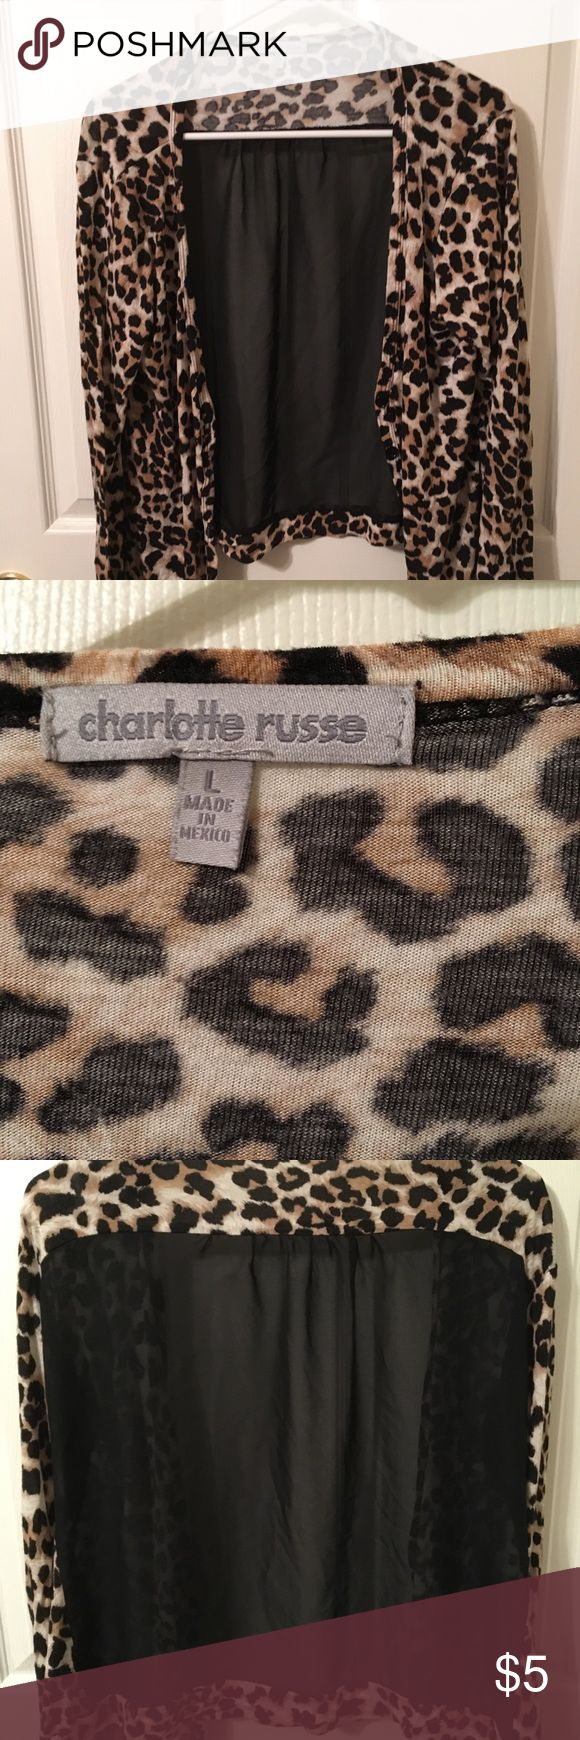 Cheetah cardigan This thin cardigan is wonderful for summer or fall layering! Charlotte Russe Sweaters Cardigans